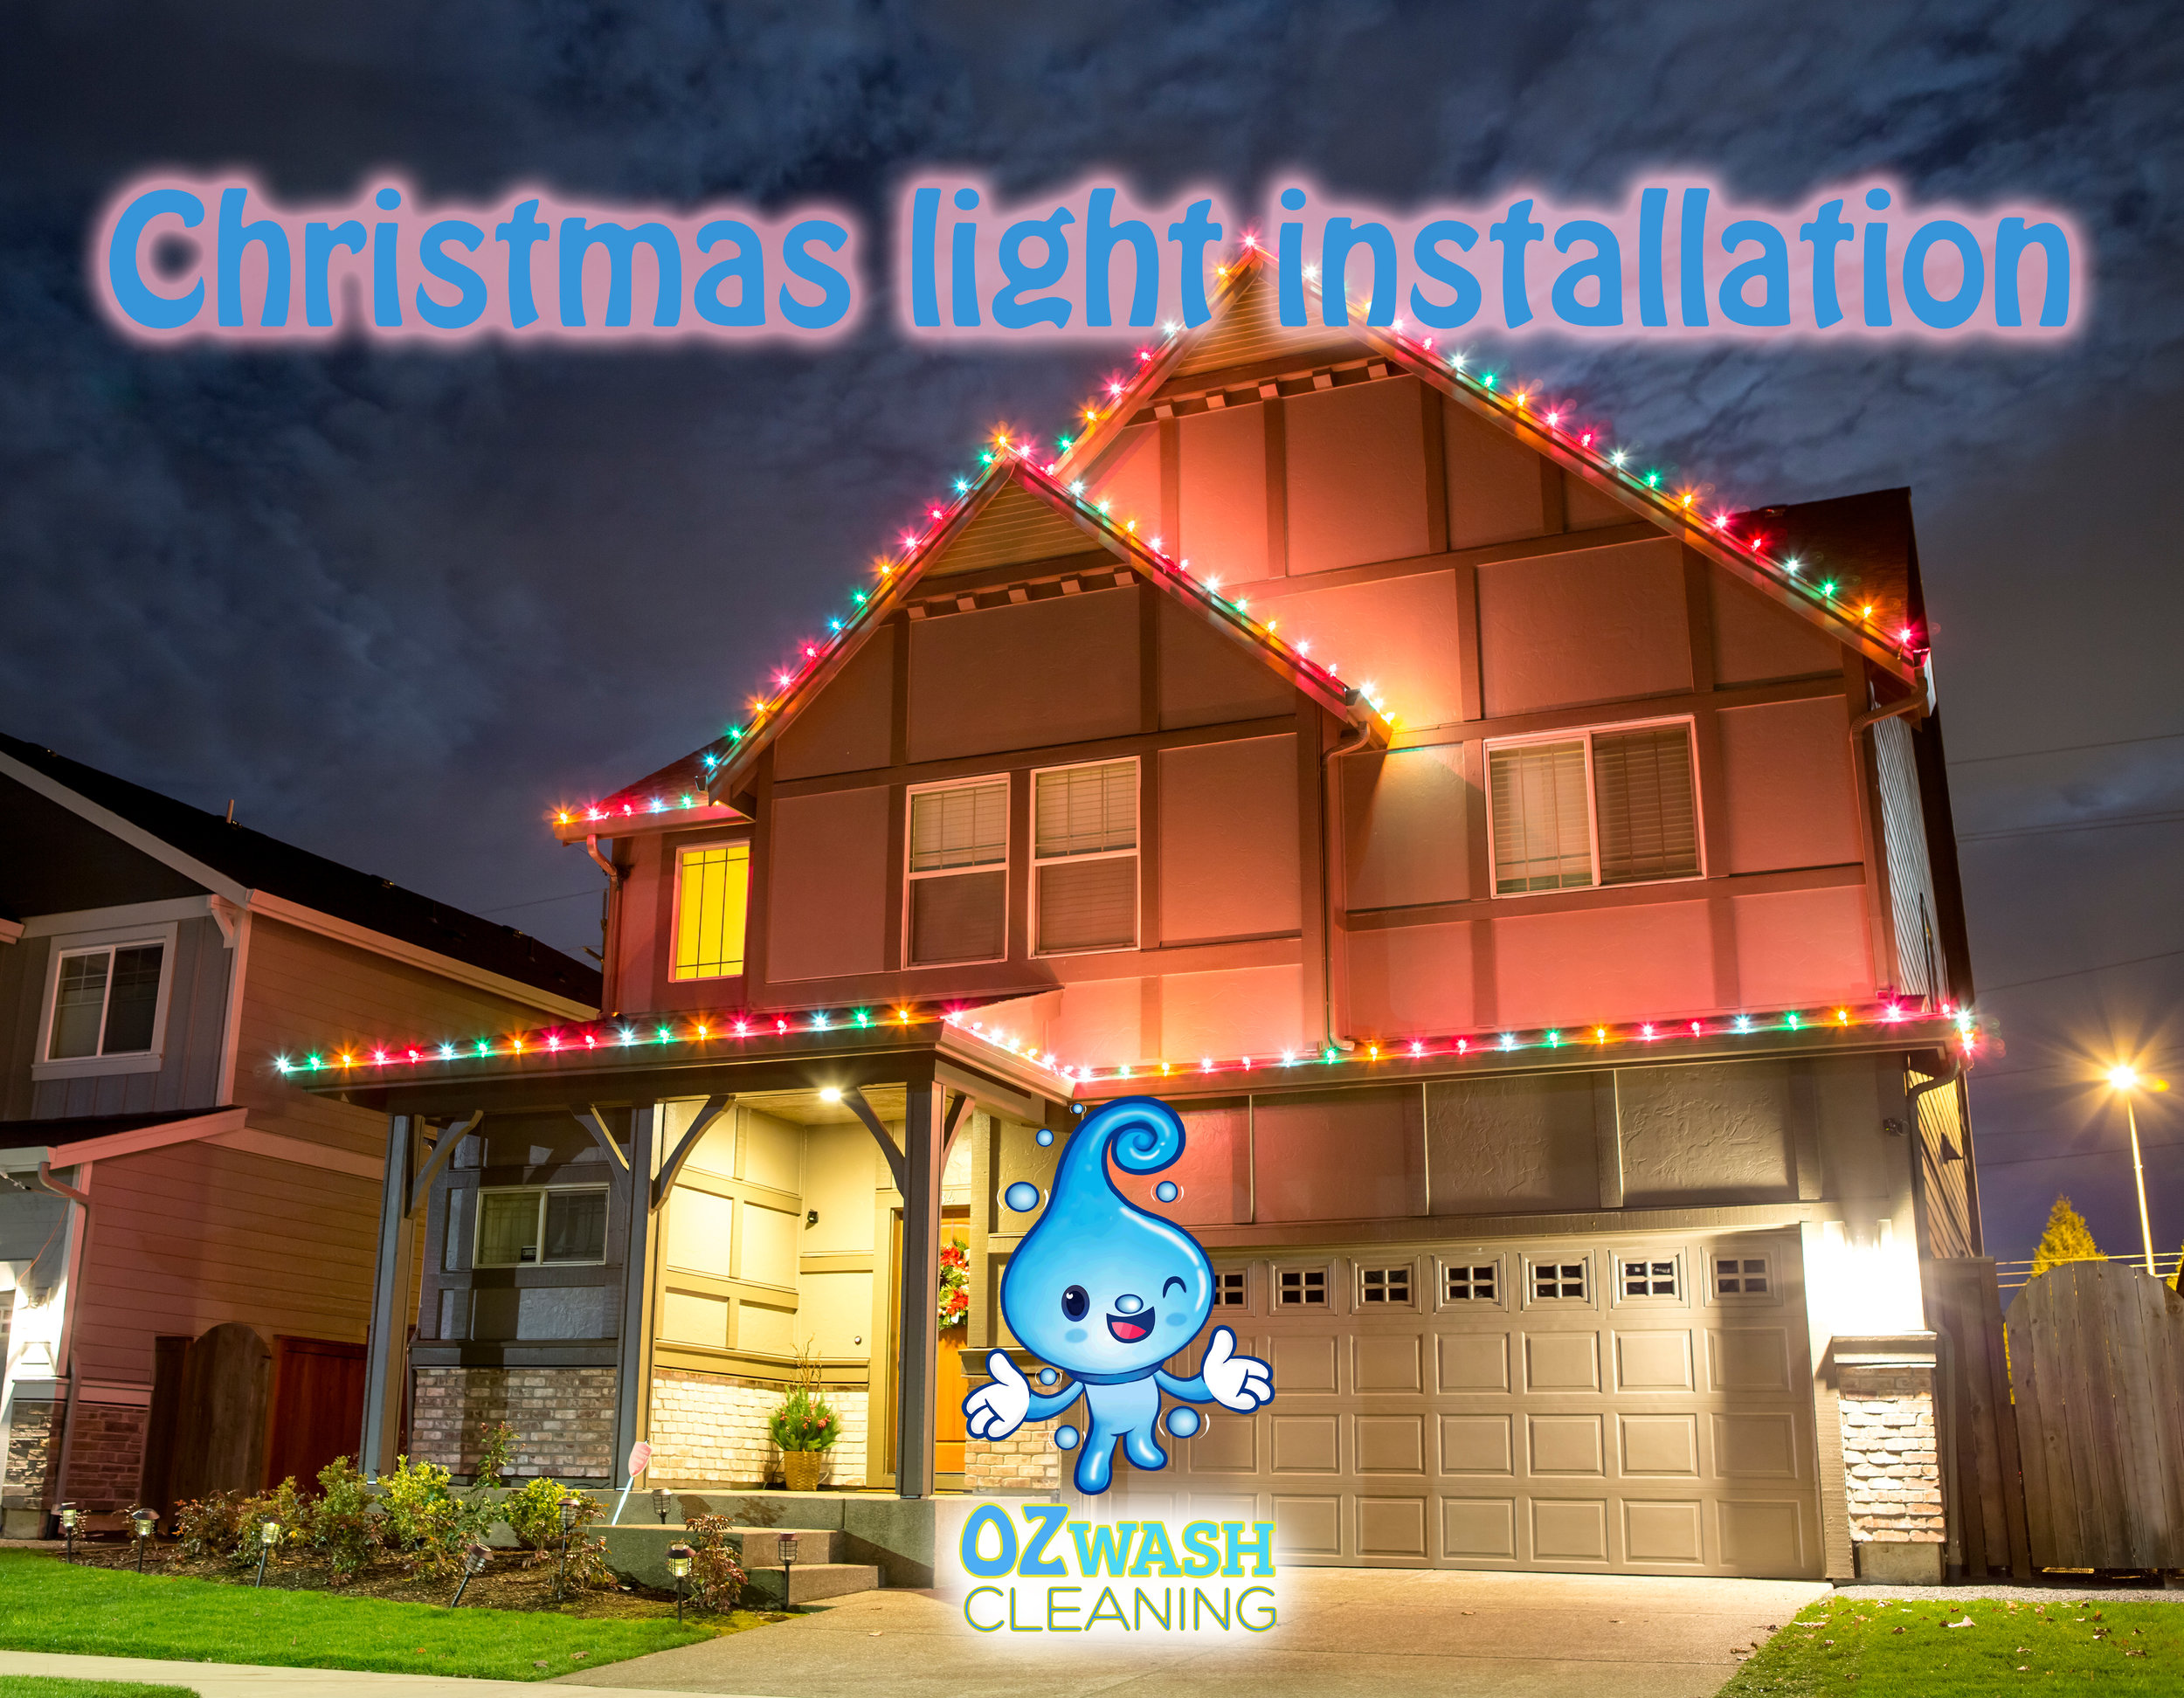 Christmas Light Installation12.jpg